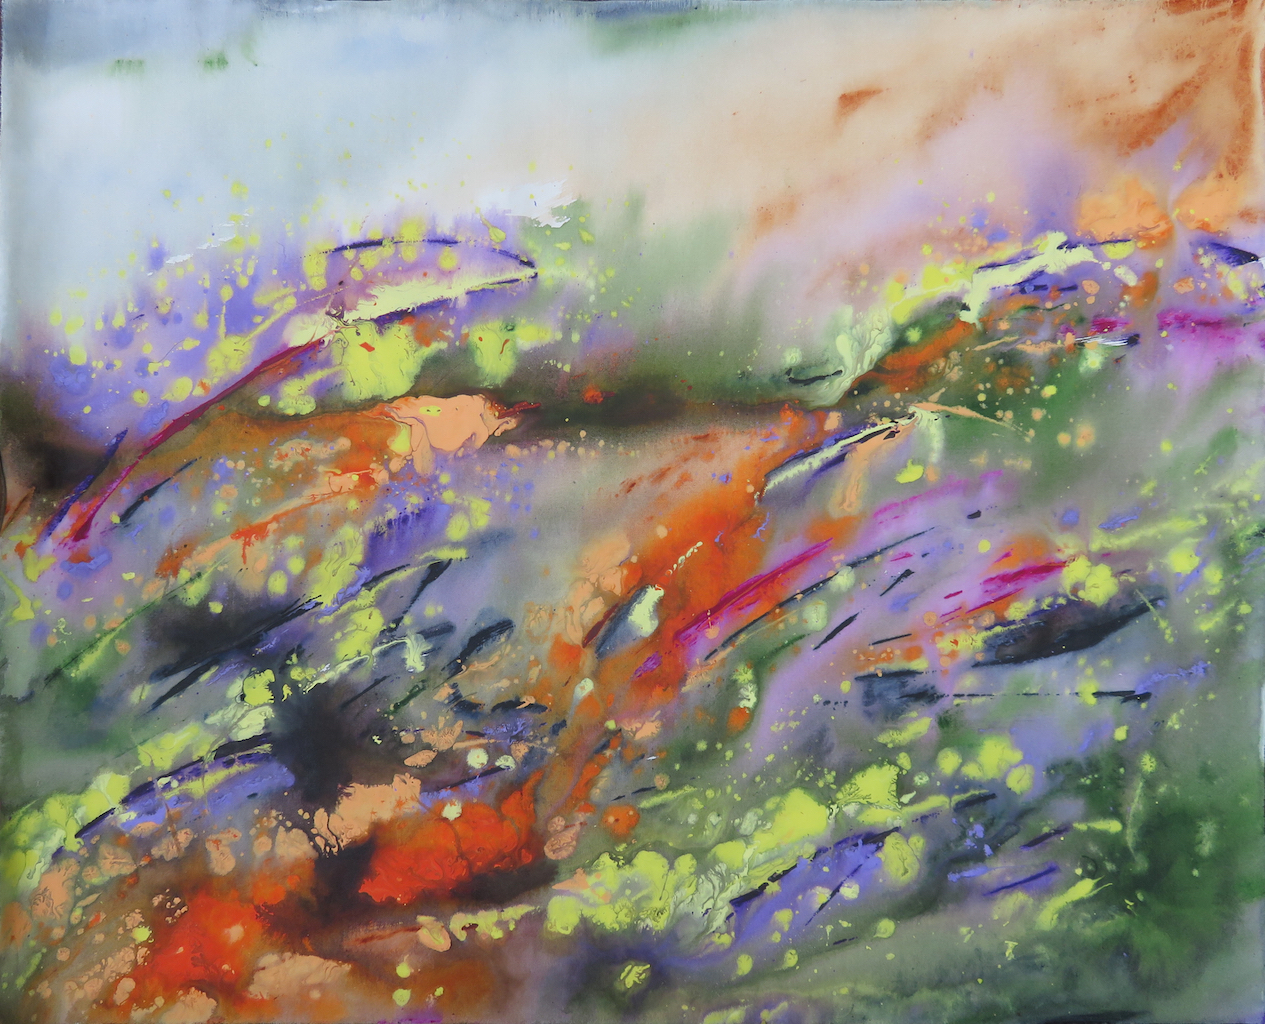 Fynbos Abstract, acrylic on loose canvas, 90 x 111 cm lo res.jpg